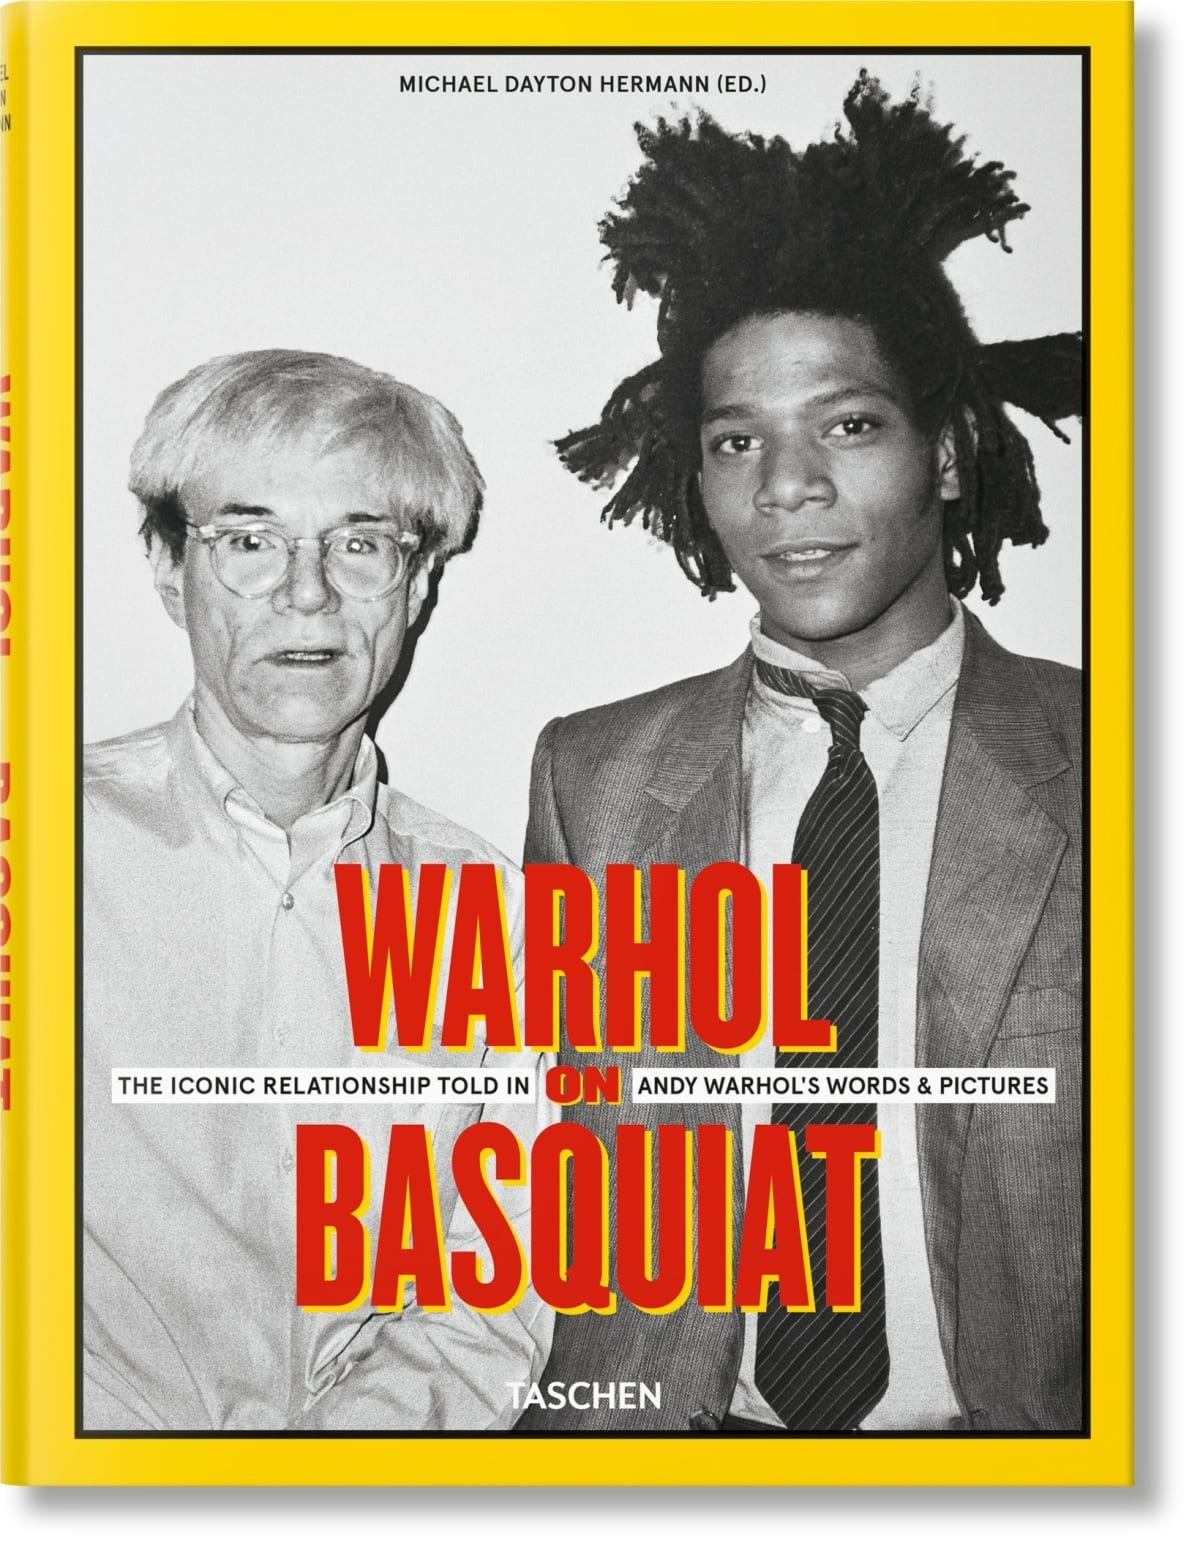 Warhol on Basquiat